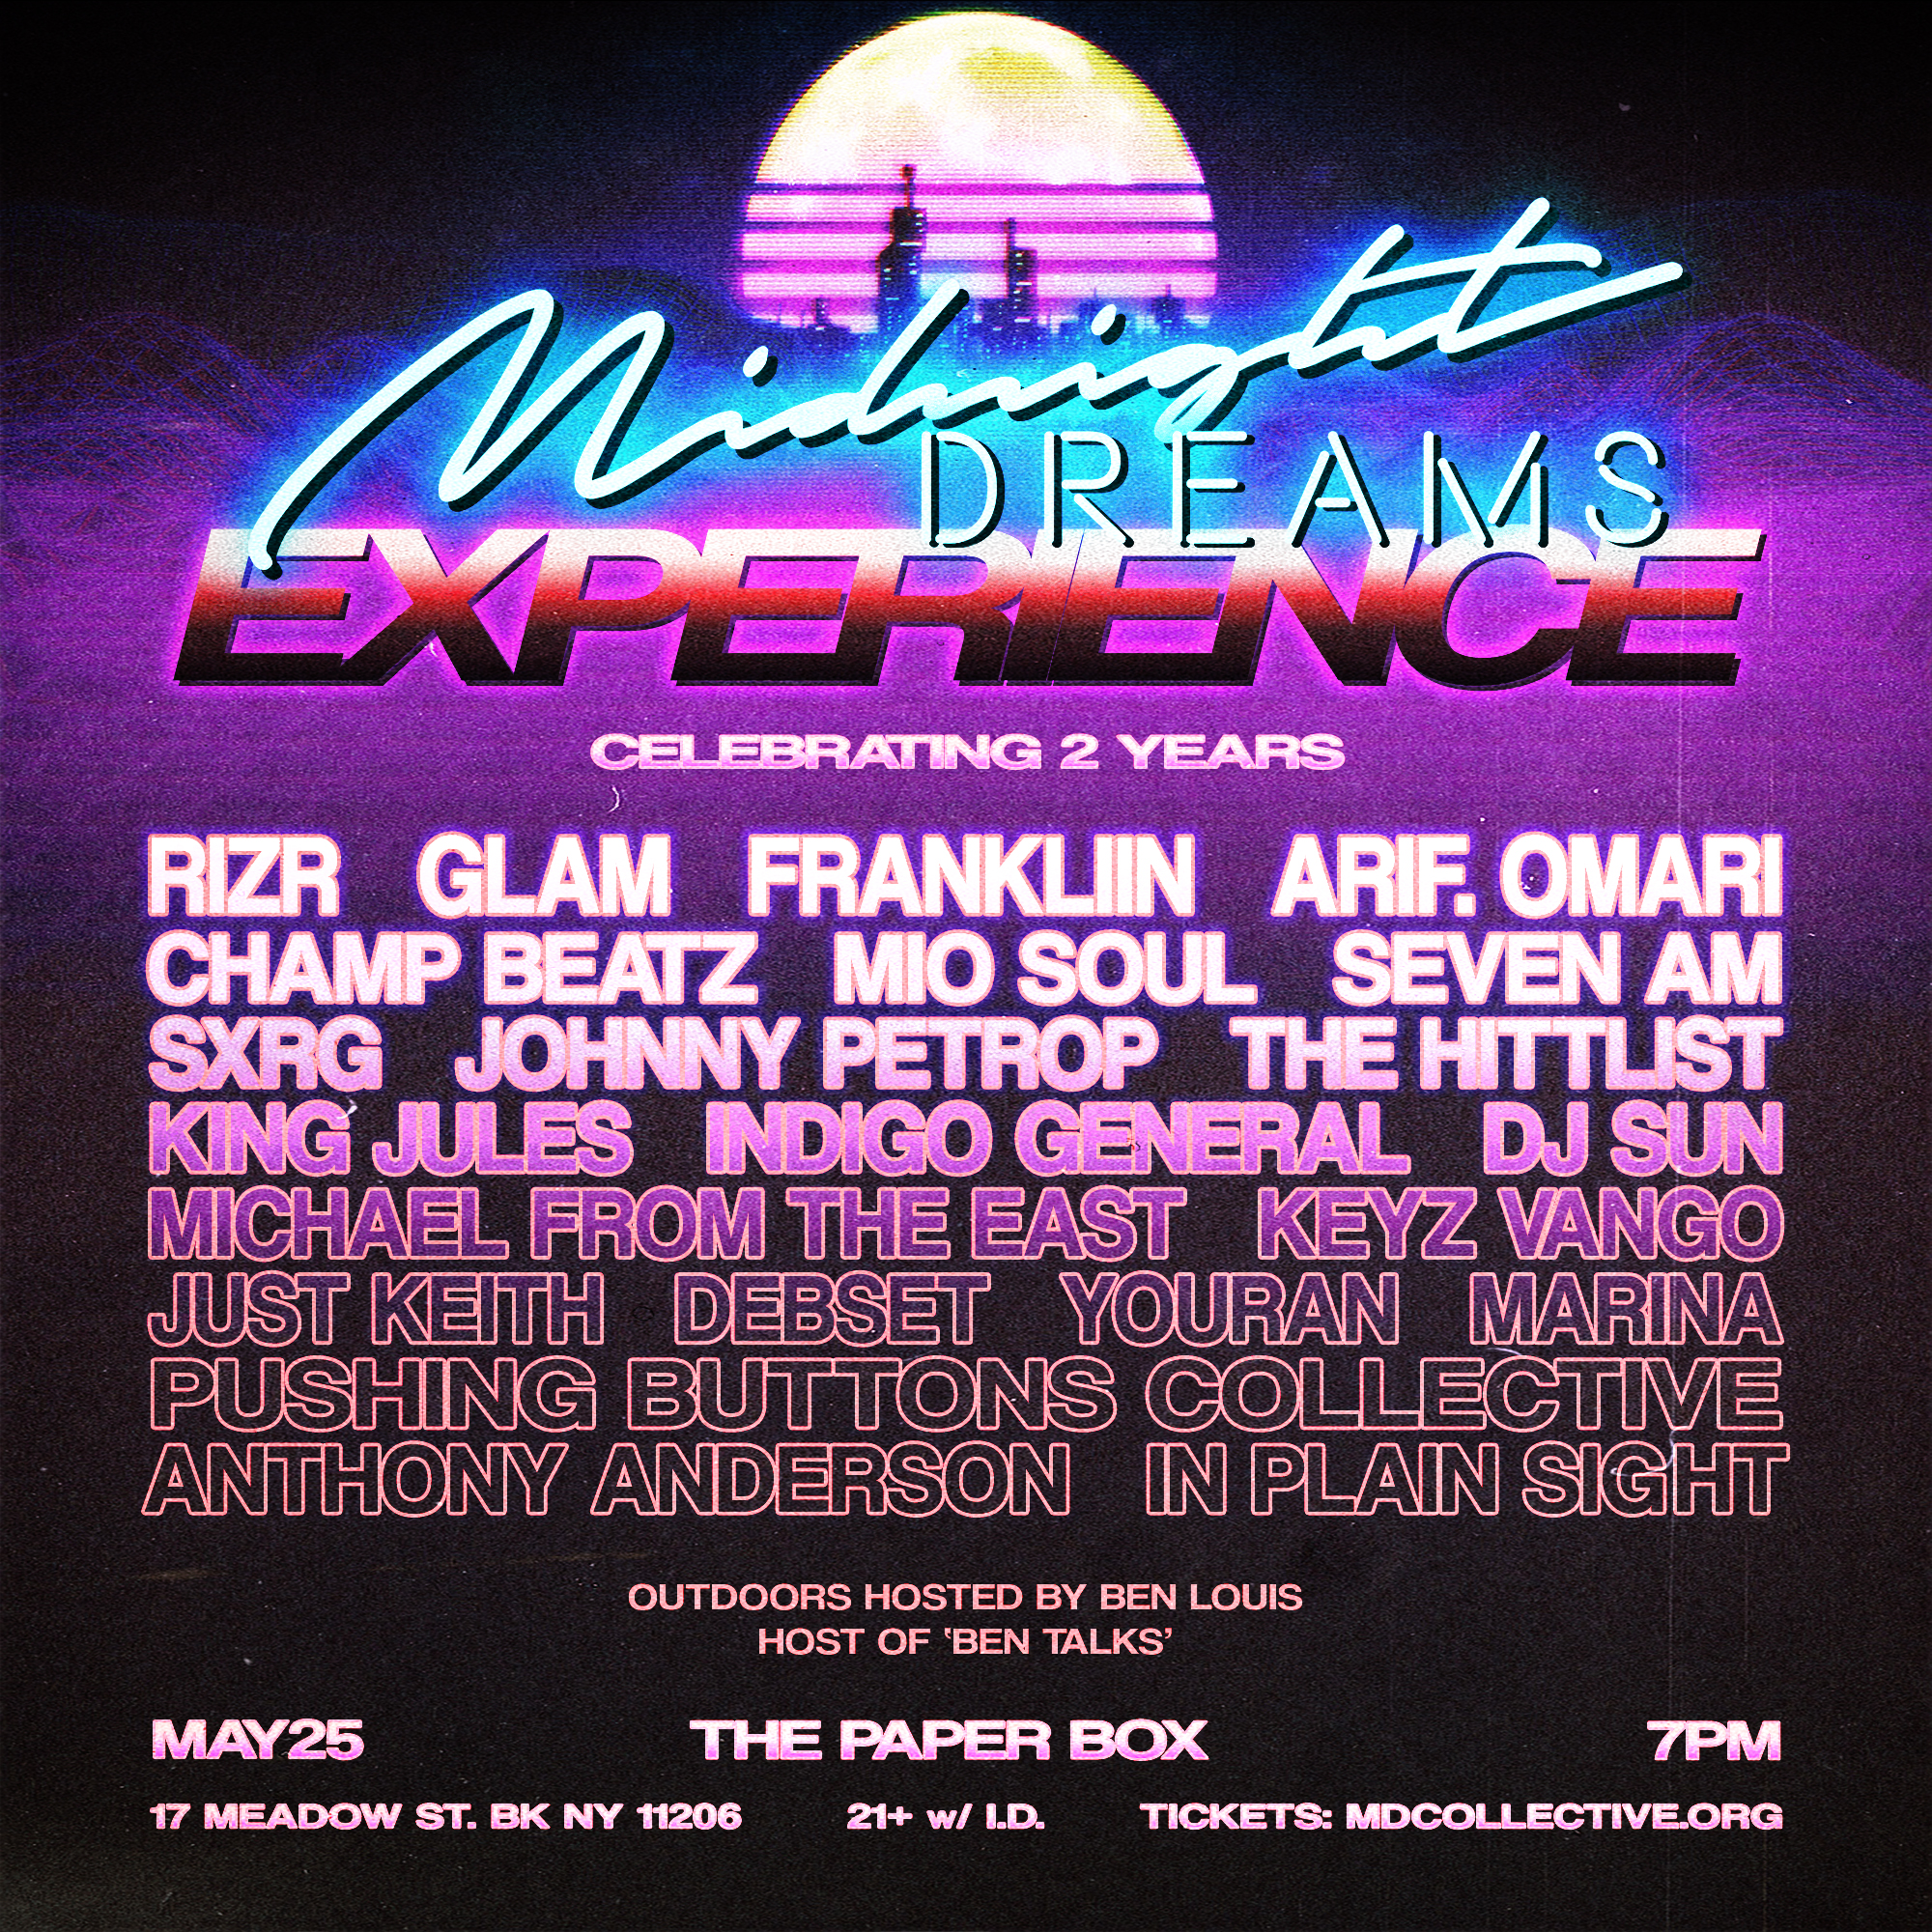 MD EXPERIENCE FLYER (UPDATED).jpg